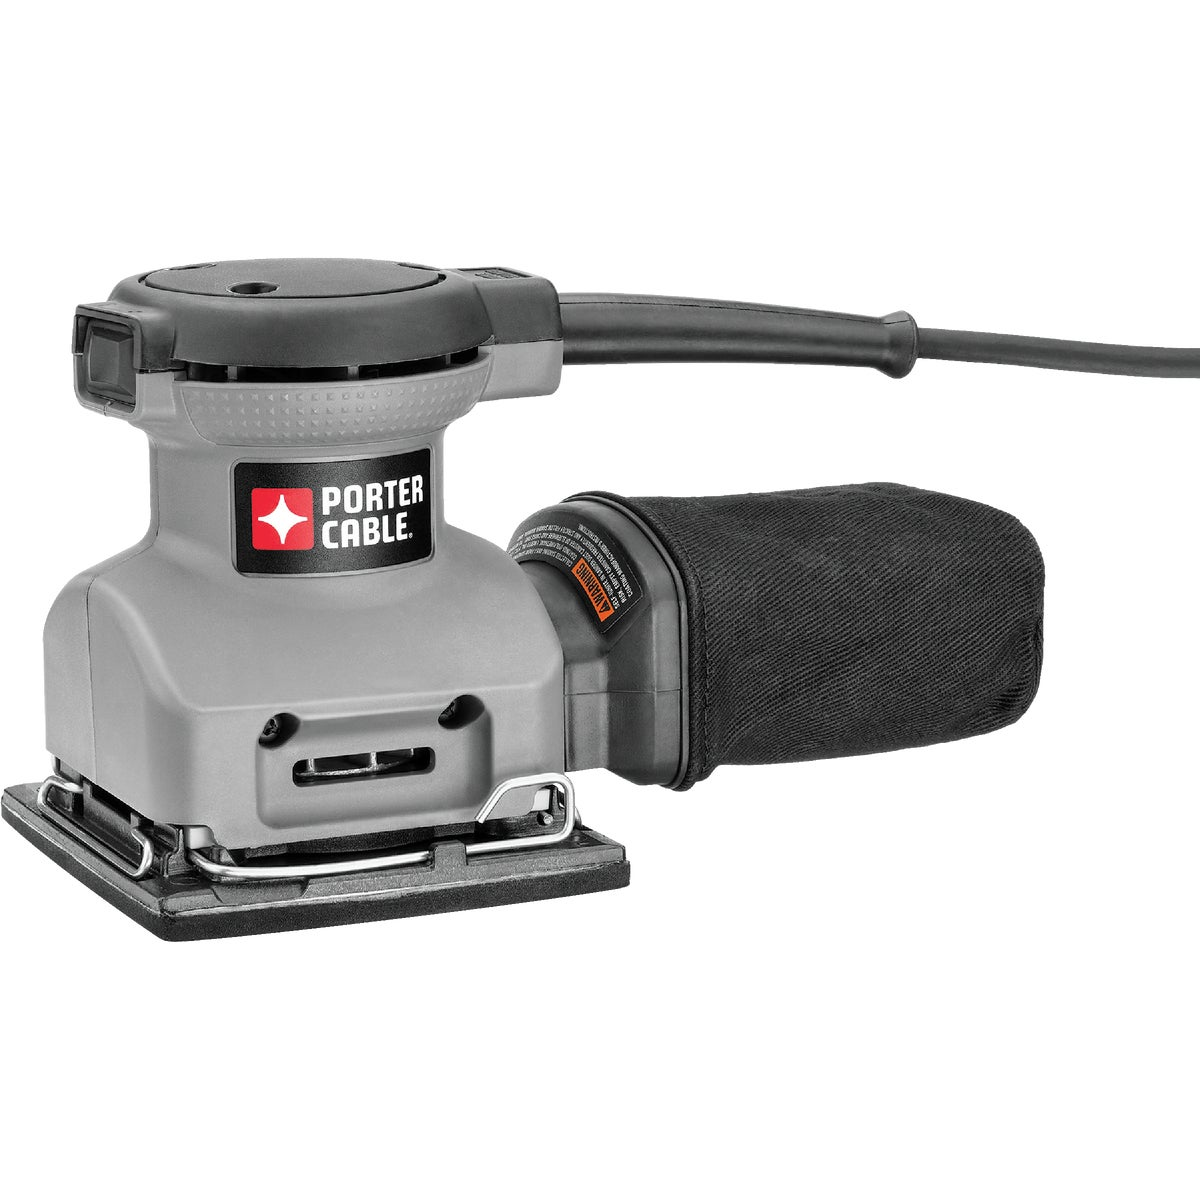 1/4 SHEET FINISH SANDER